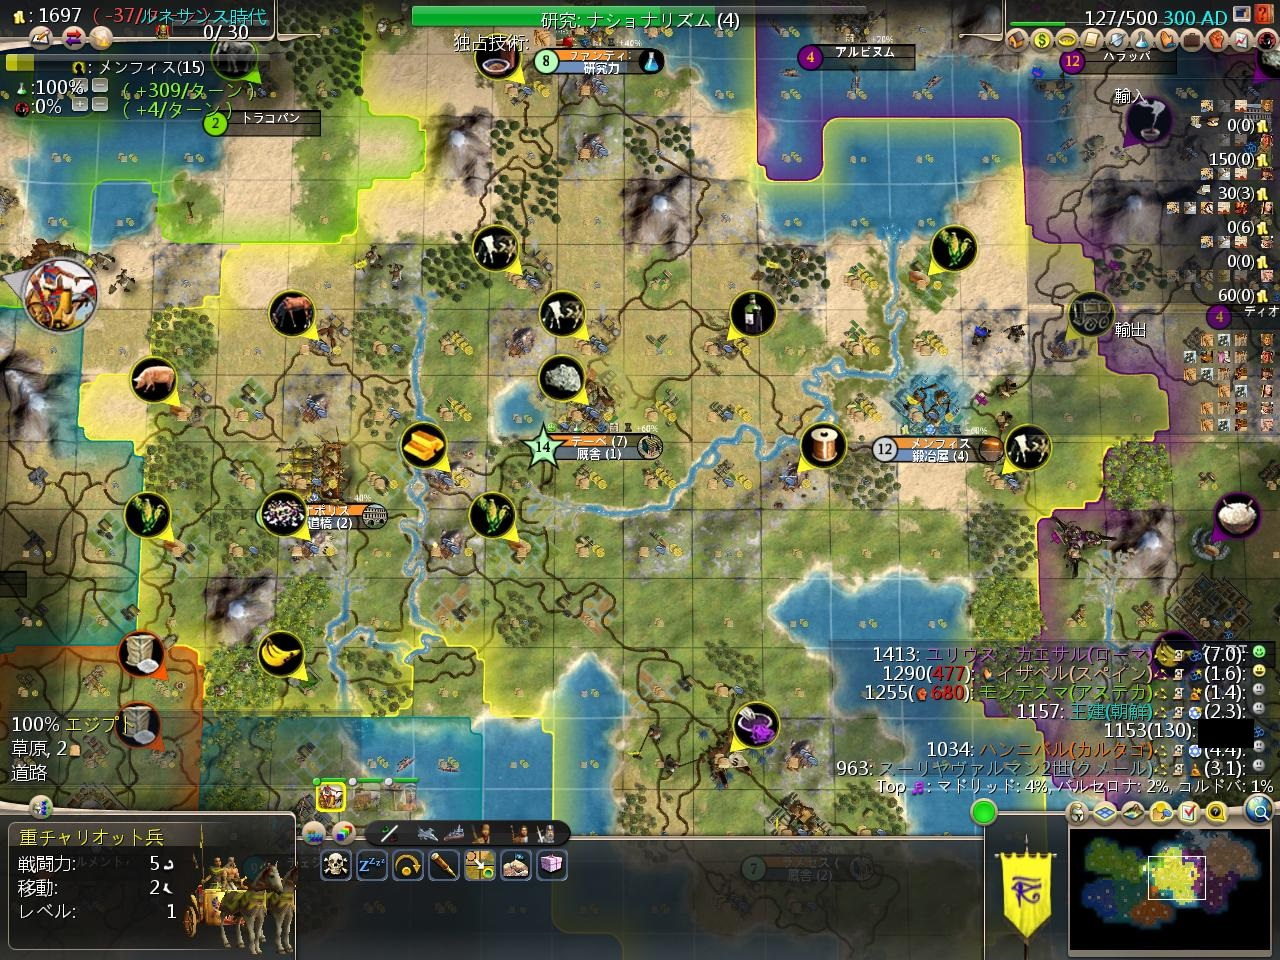 Civ4ScreenShot2137.JPG